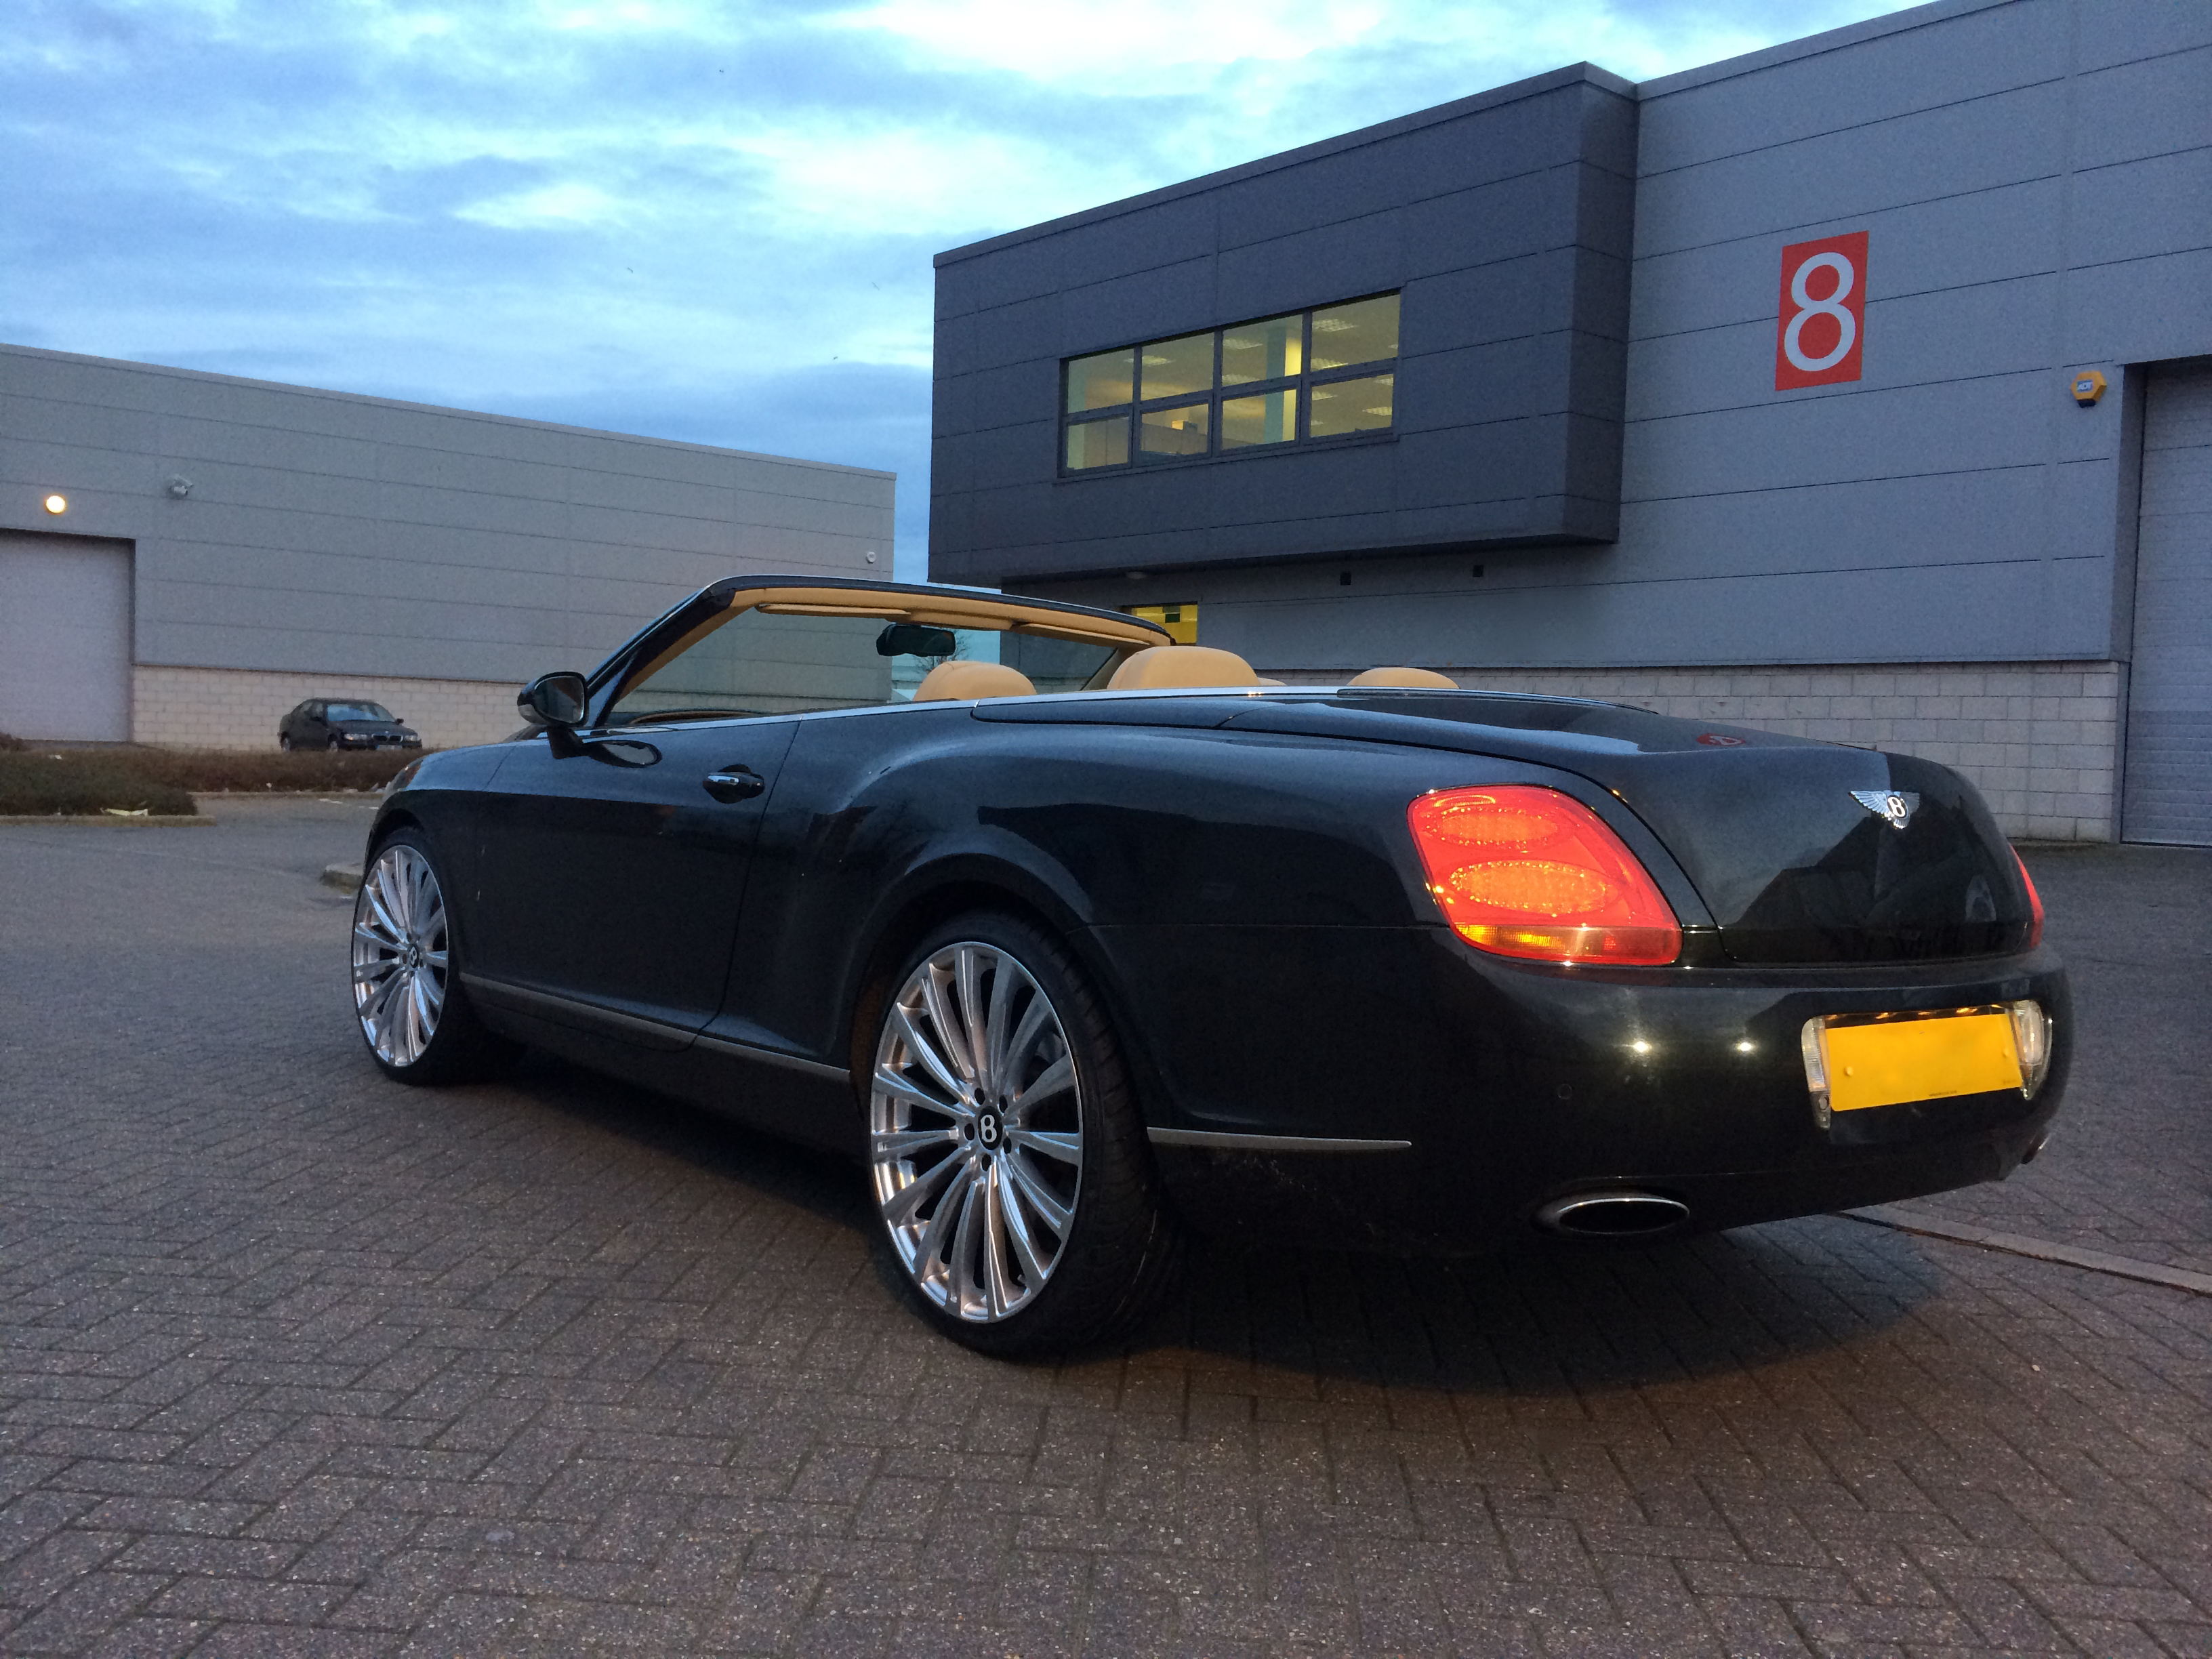 Black Bentley GTC on HAWKE Chayton wheels in Silver colour finish